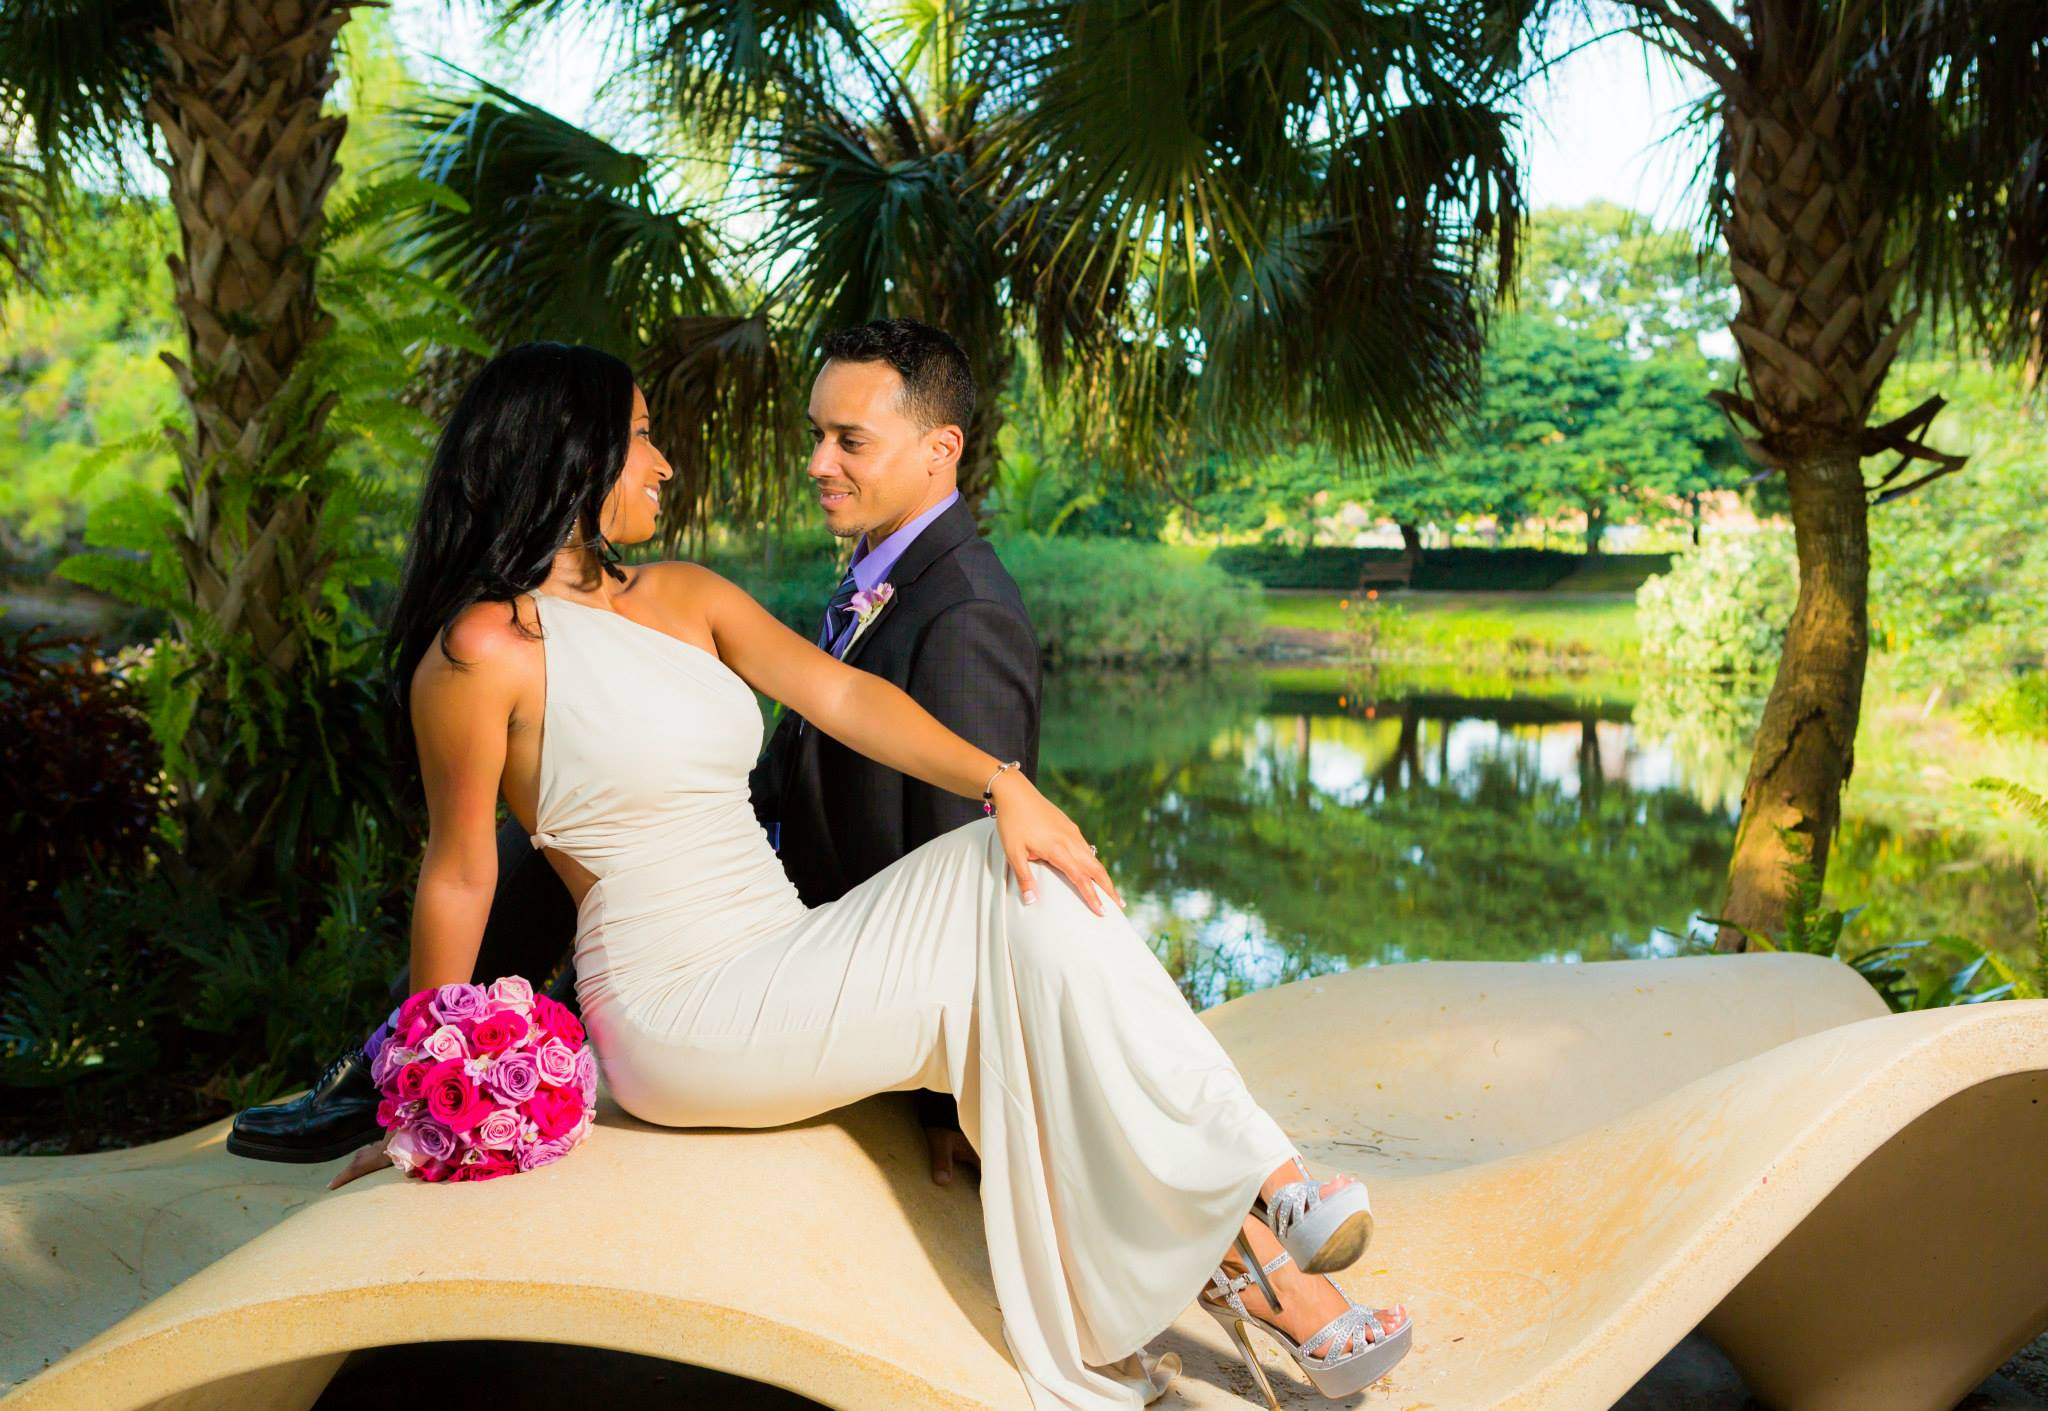 Need a palm Beach Wedding Photographer for your Palm Beach County Wedding